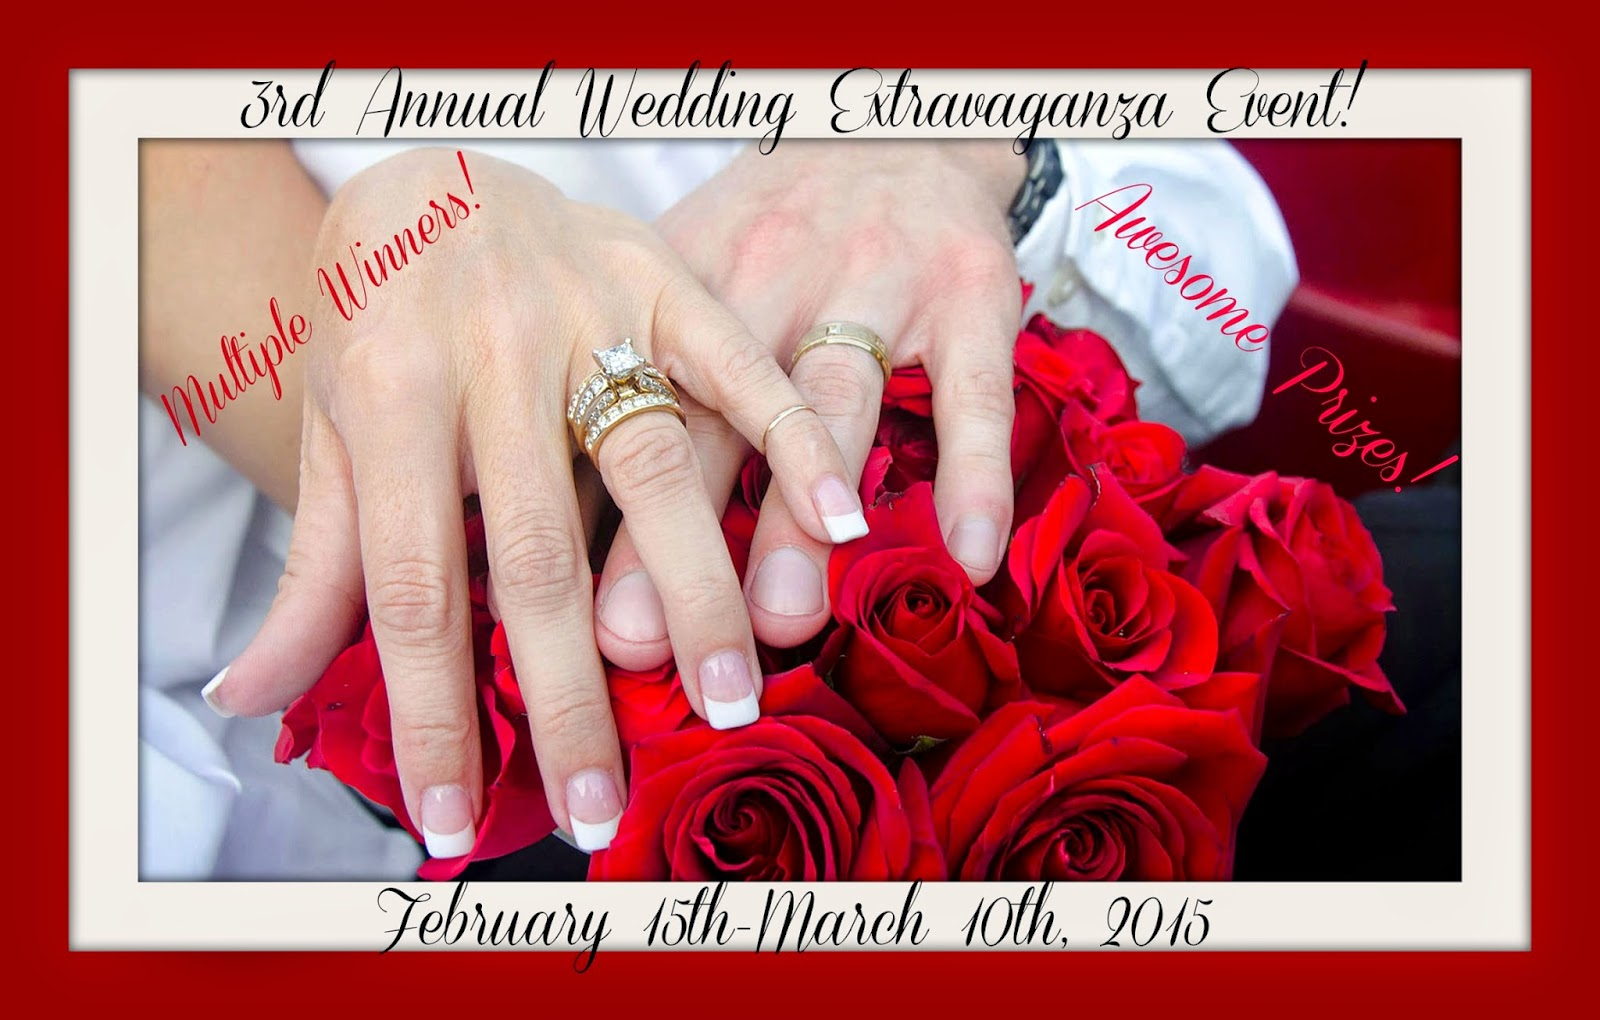 3rd Annual Wedding Extravaganza Event